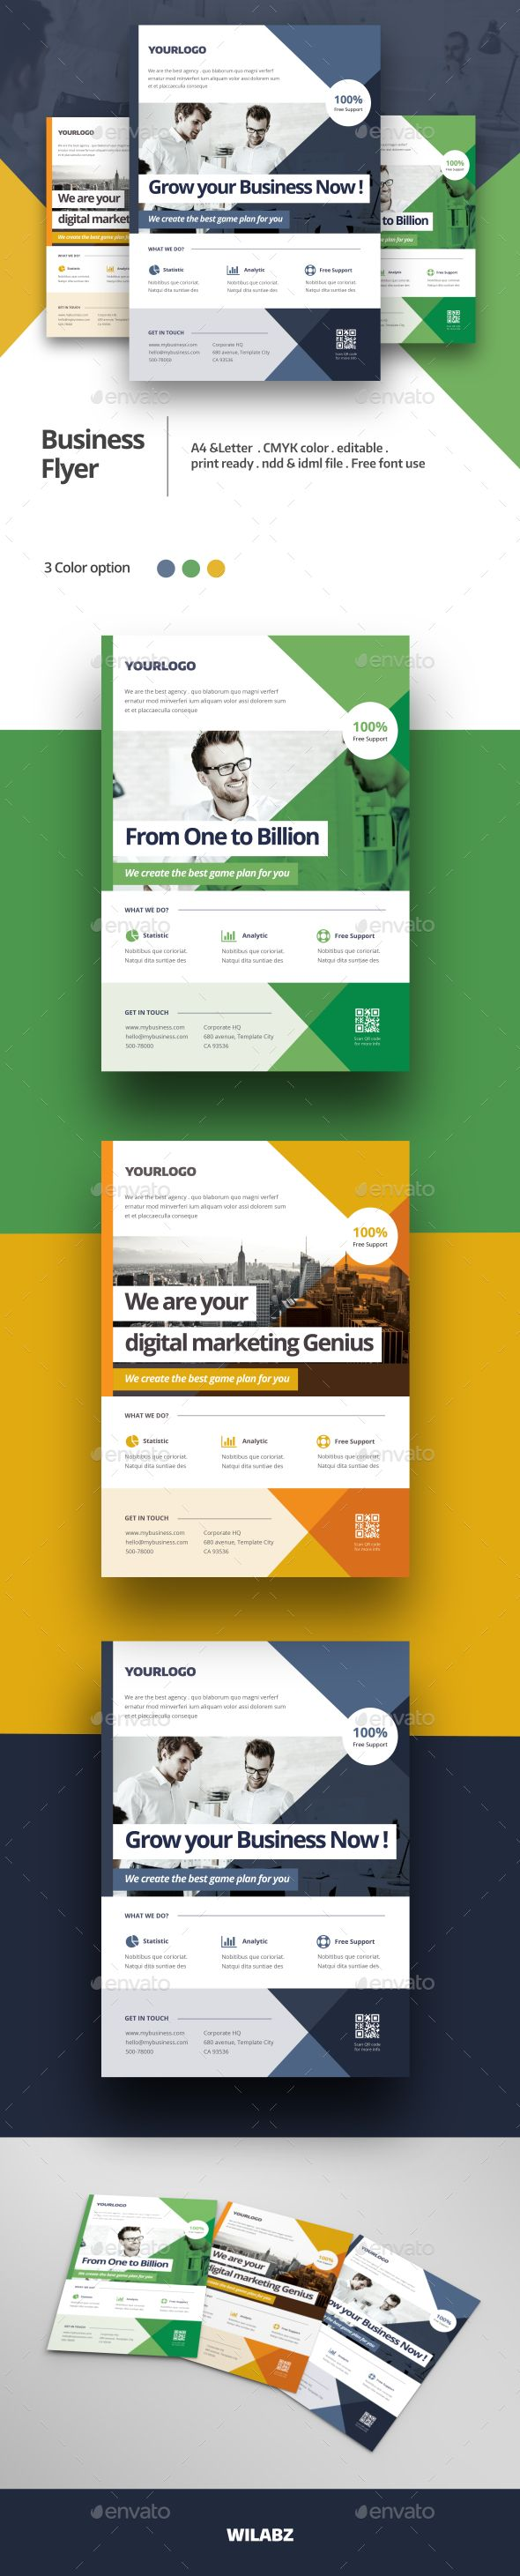 ideas about business flyers business flyer business flyer template